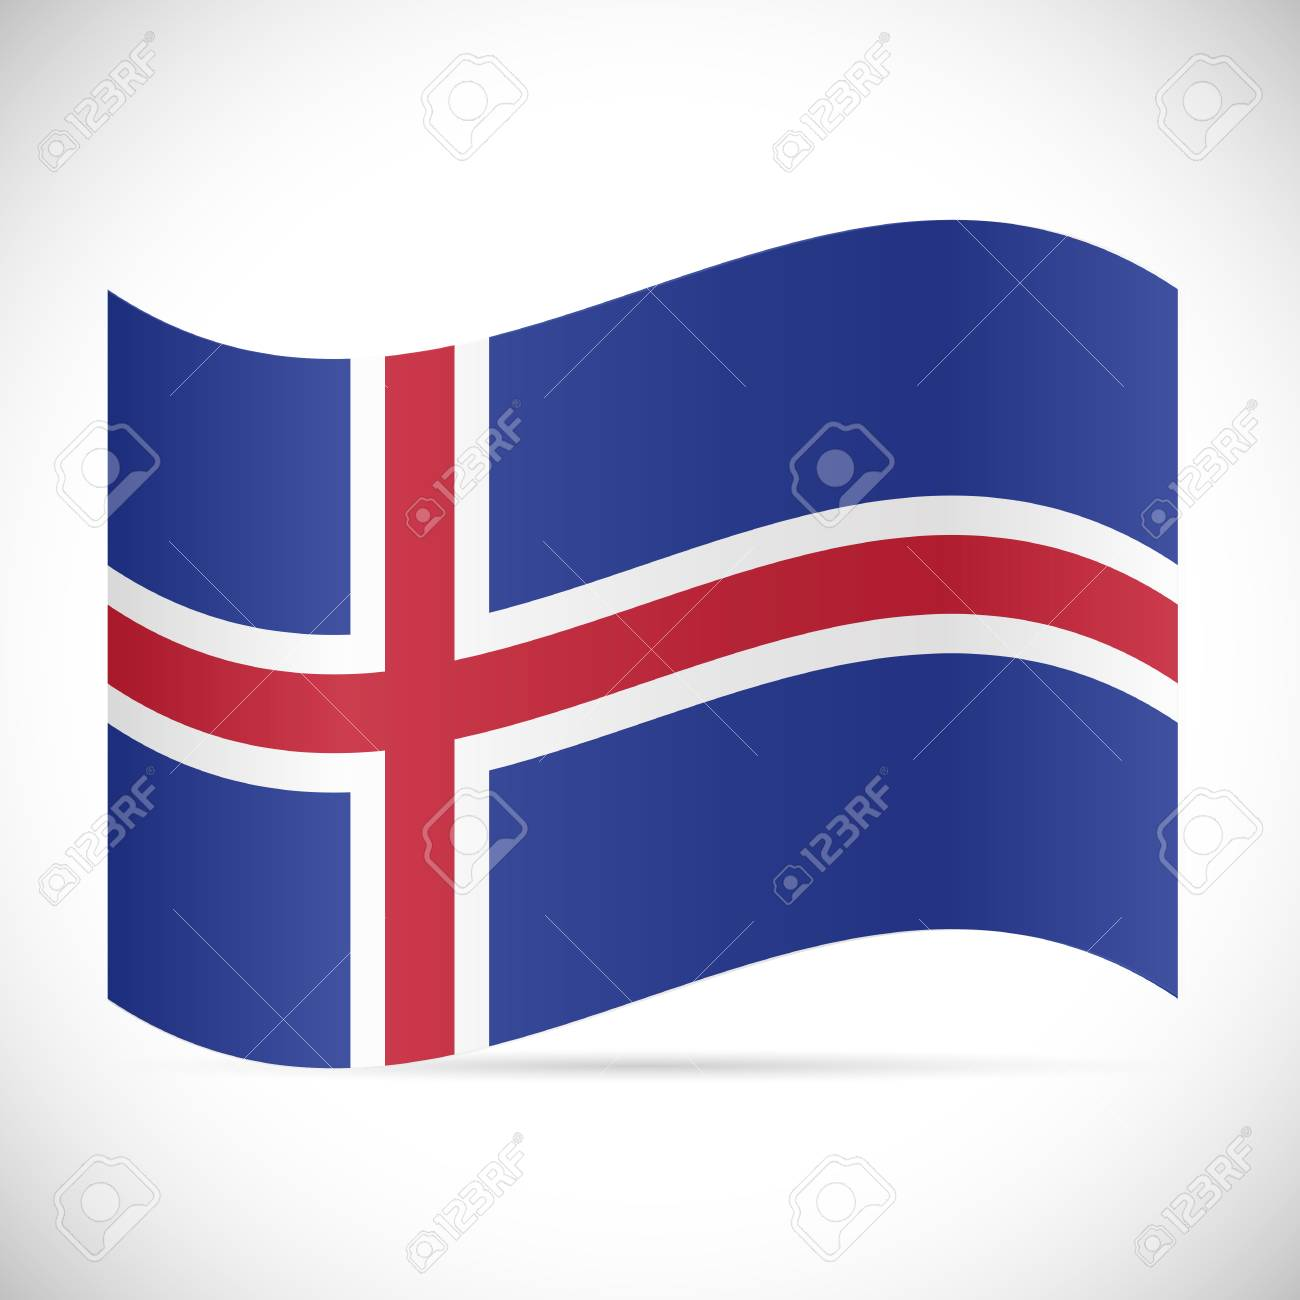 Illustration of the flag of Iceland isolated on a white background. - 97016087